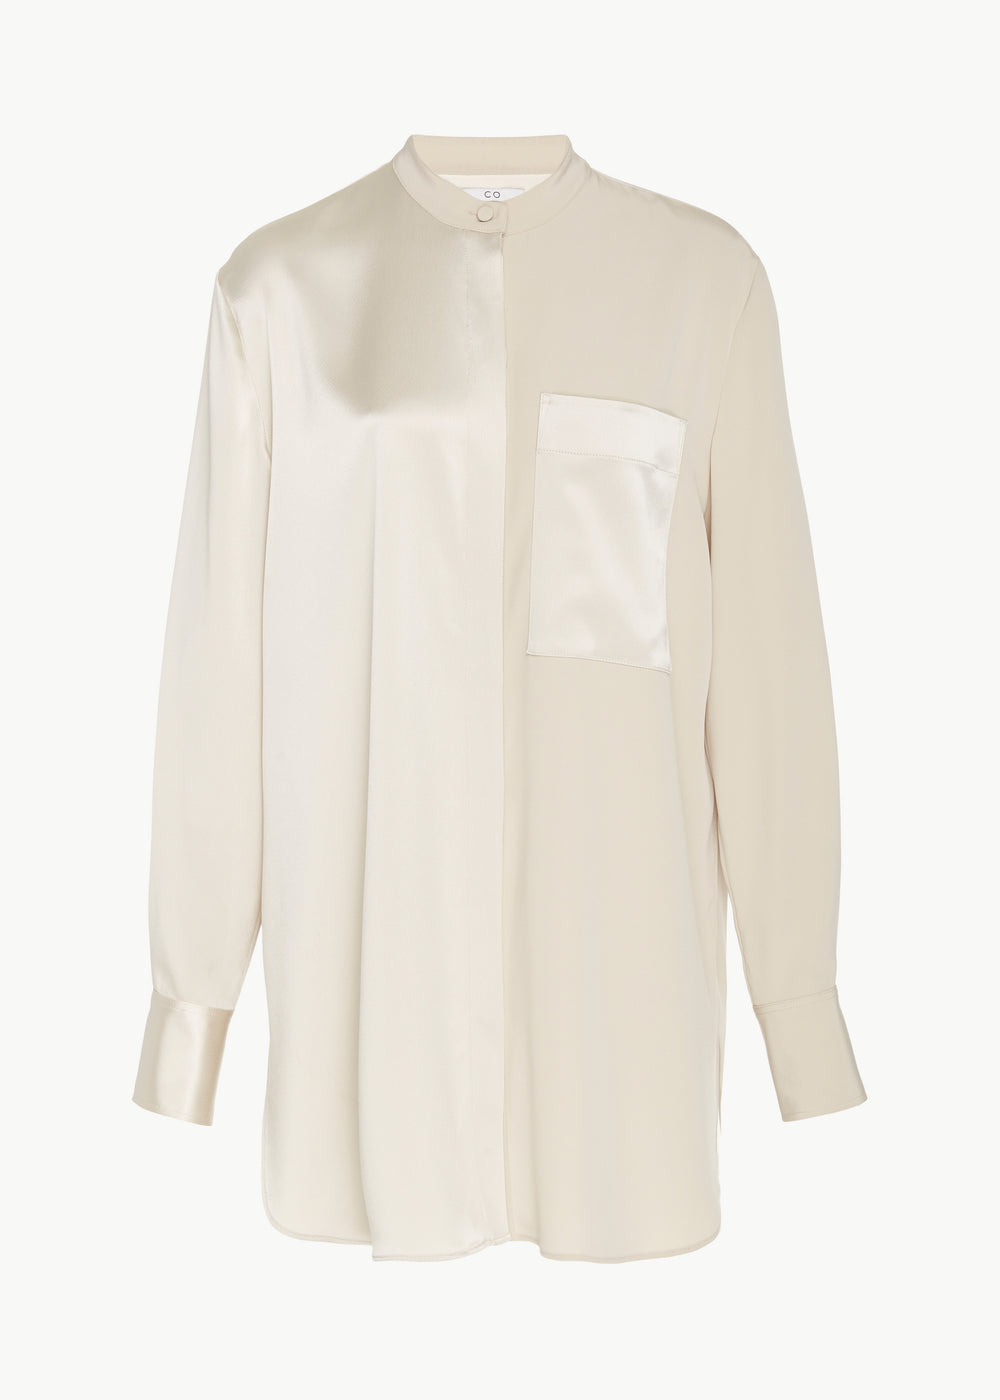 Banded Neck Shirt in Stretch Crepe - Champagne - CO